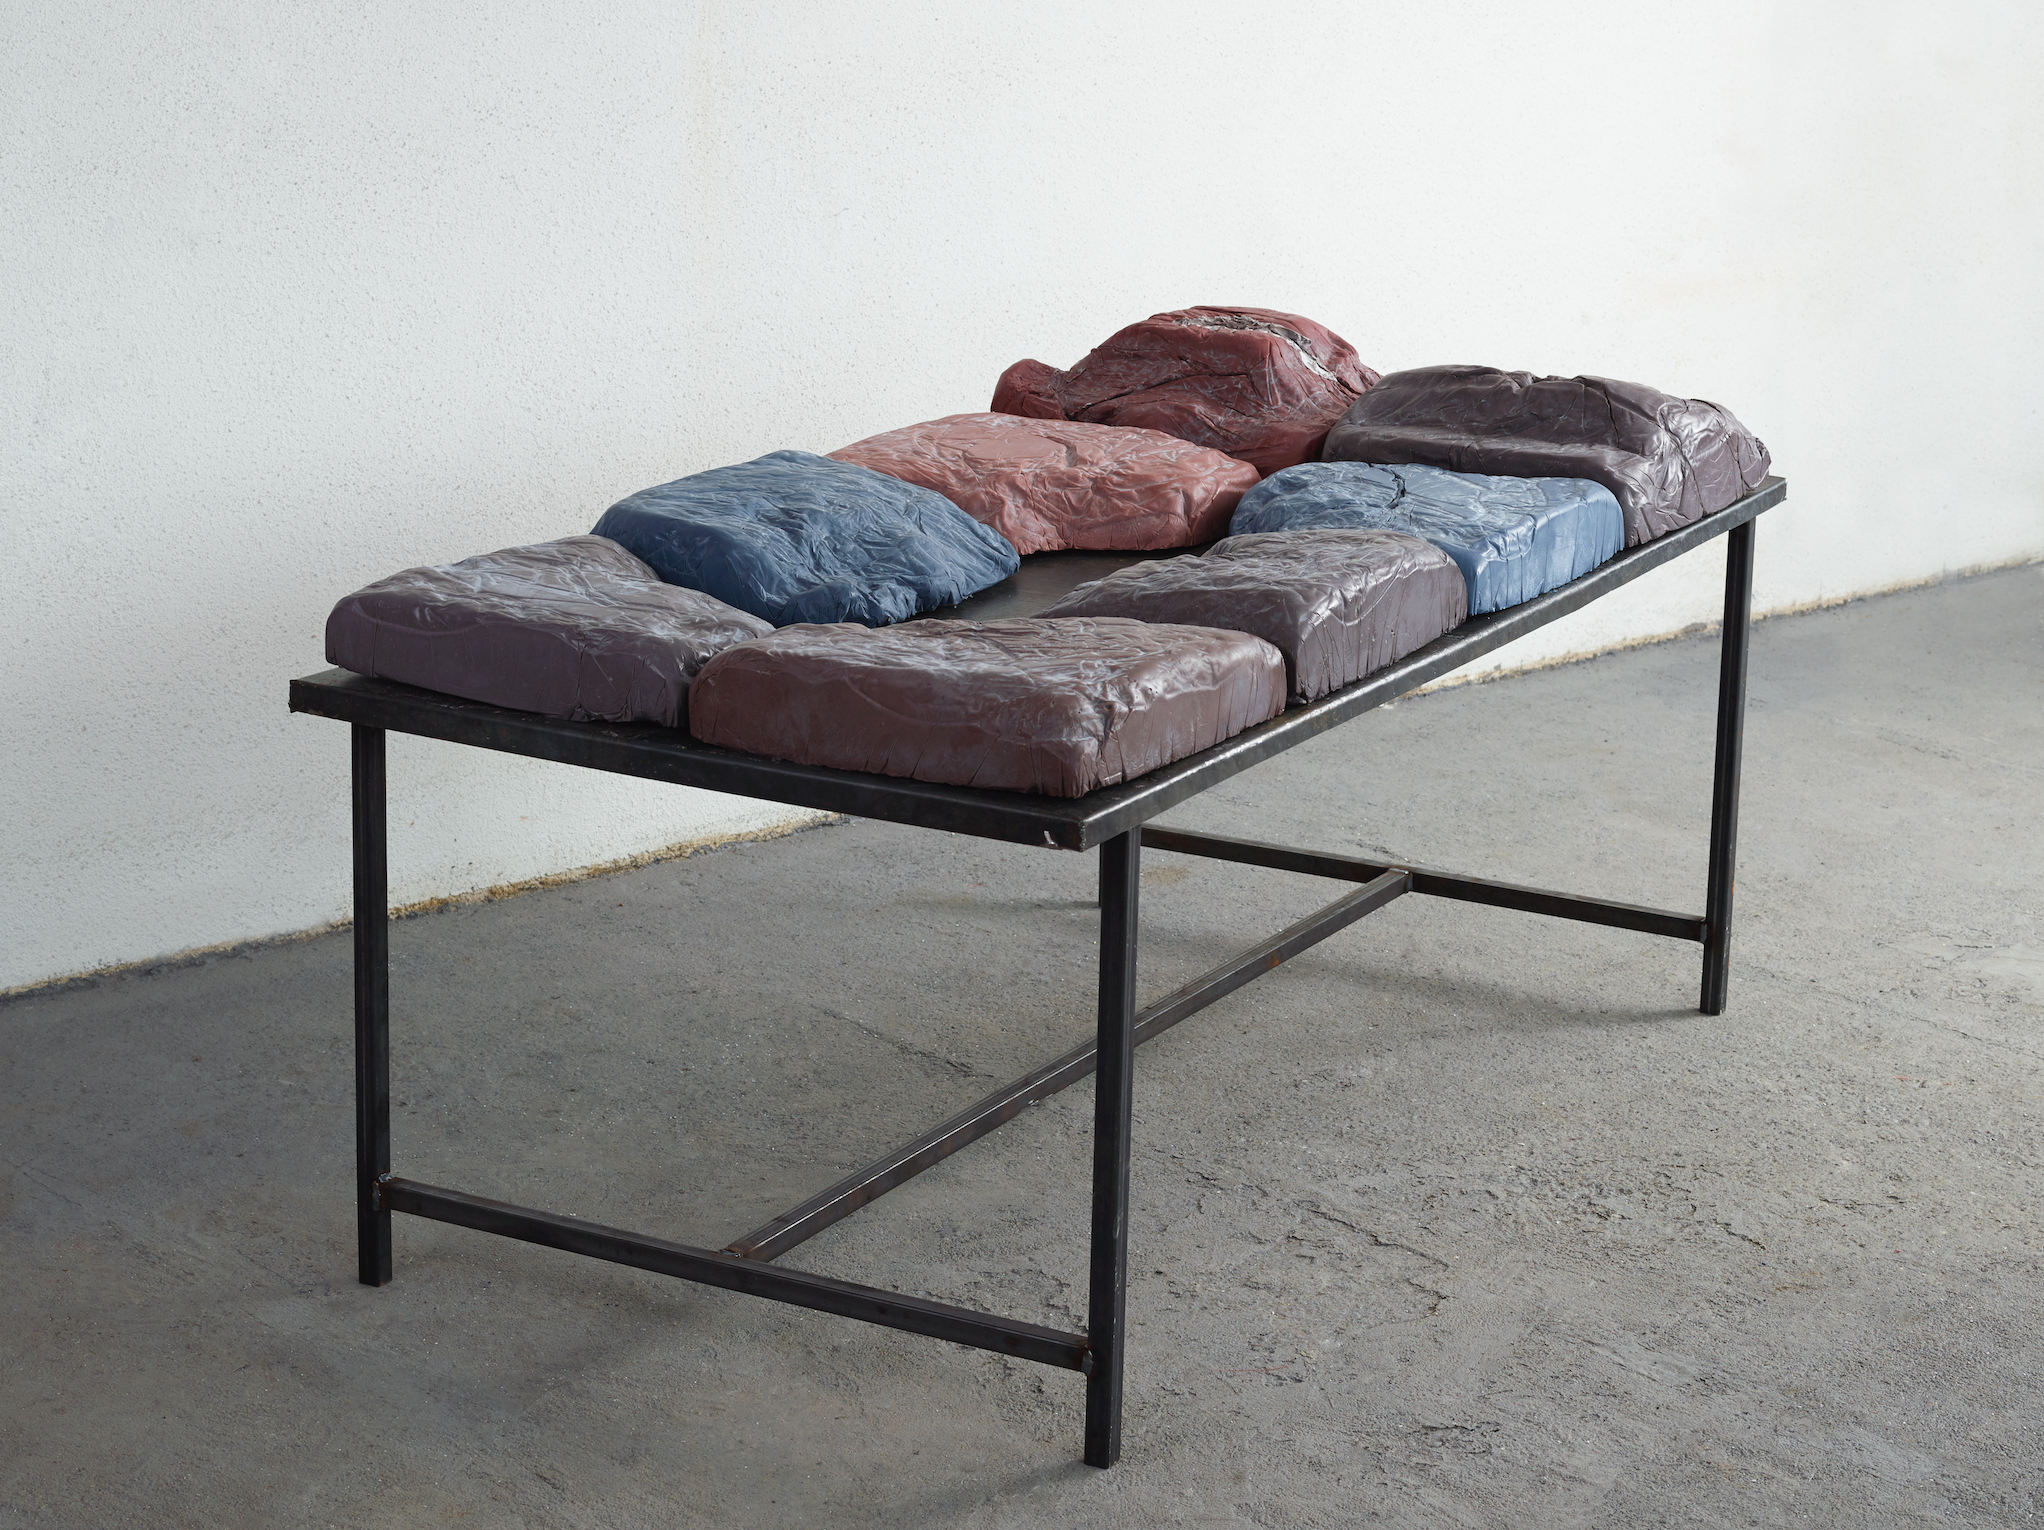 soap and metal table/  olive oil, coconut oil, lye, water, pigment/moulds made from the sheets and pillows of the artist's bed/2m x 1m, height 70 cm